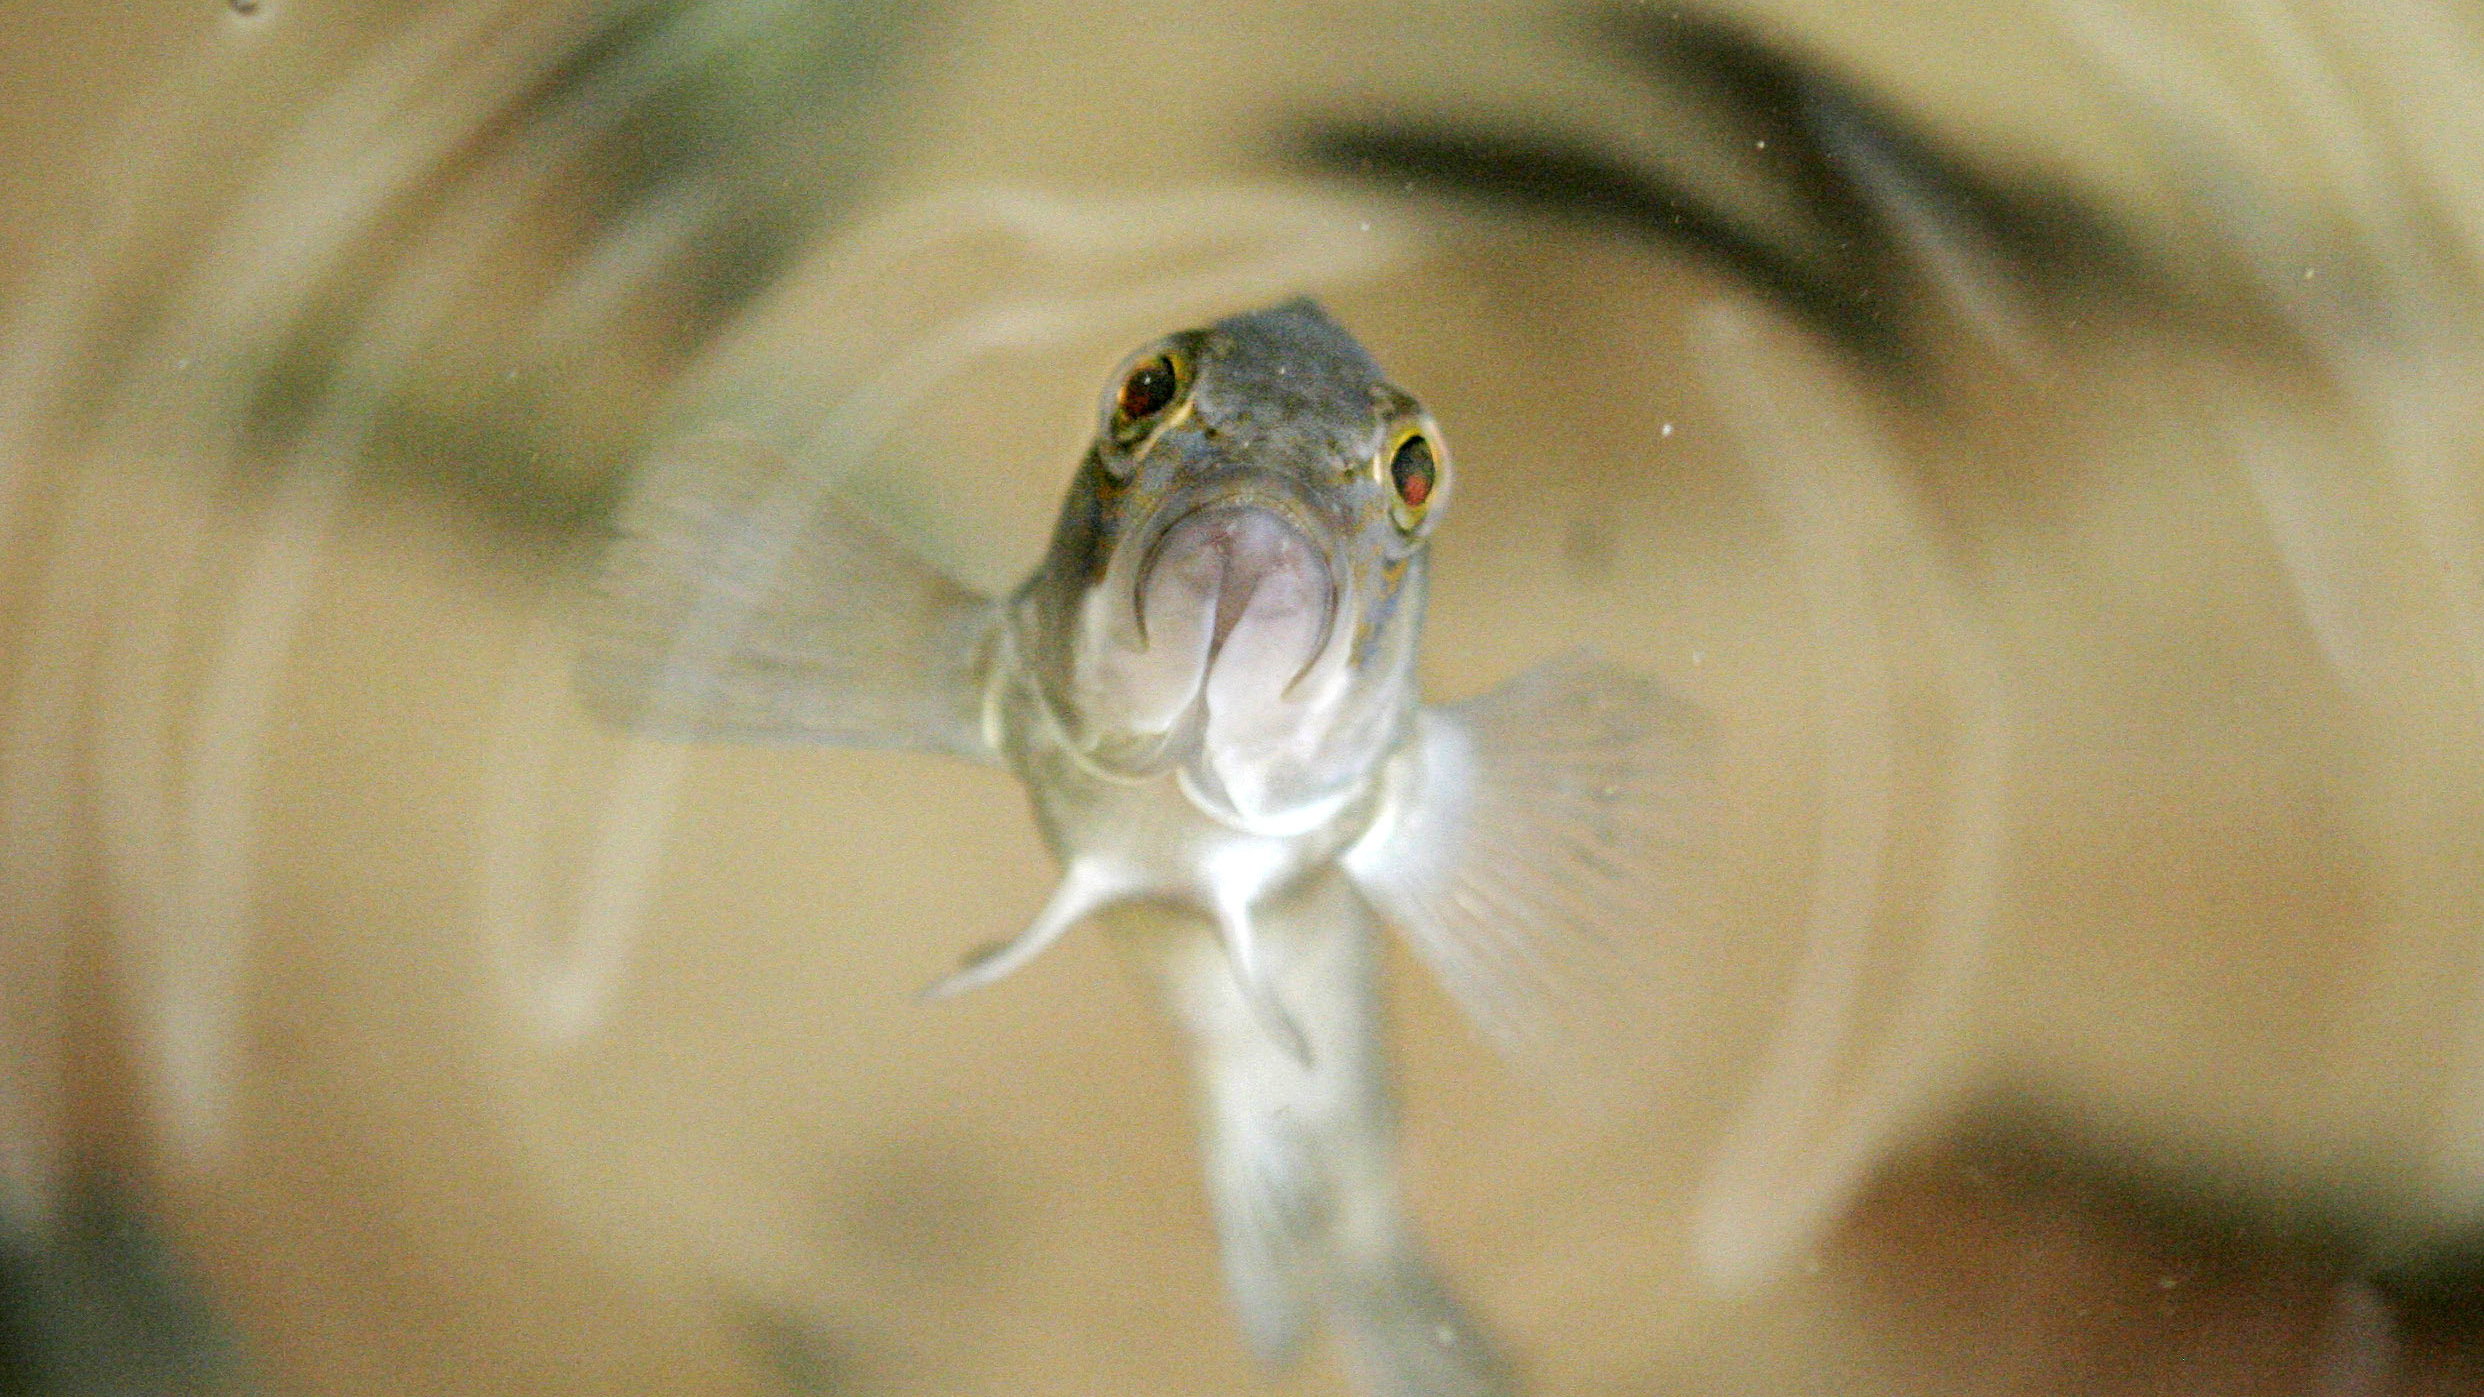 The Amazon molly is all-female fish species that's changing